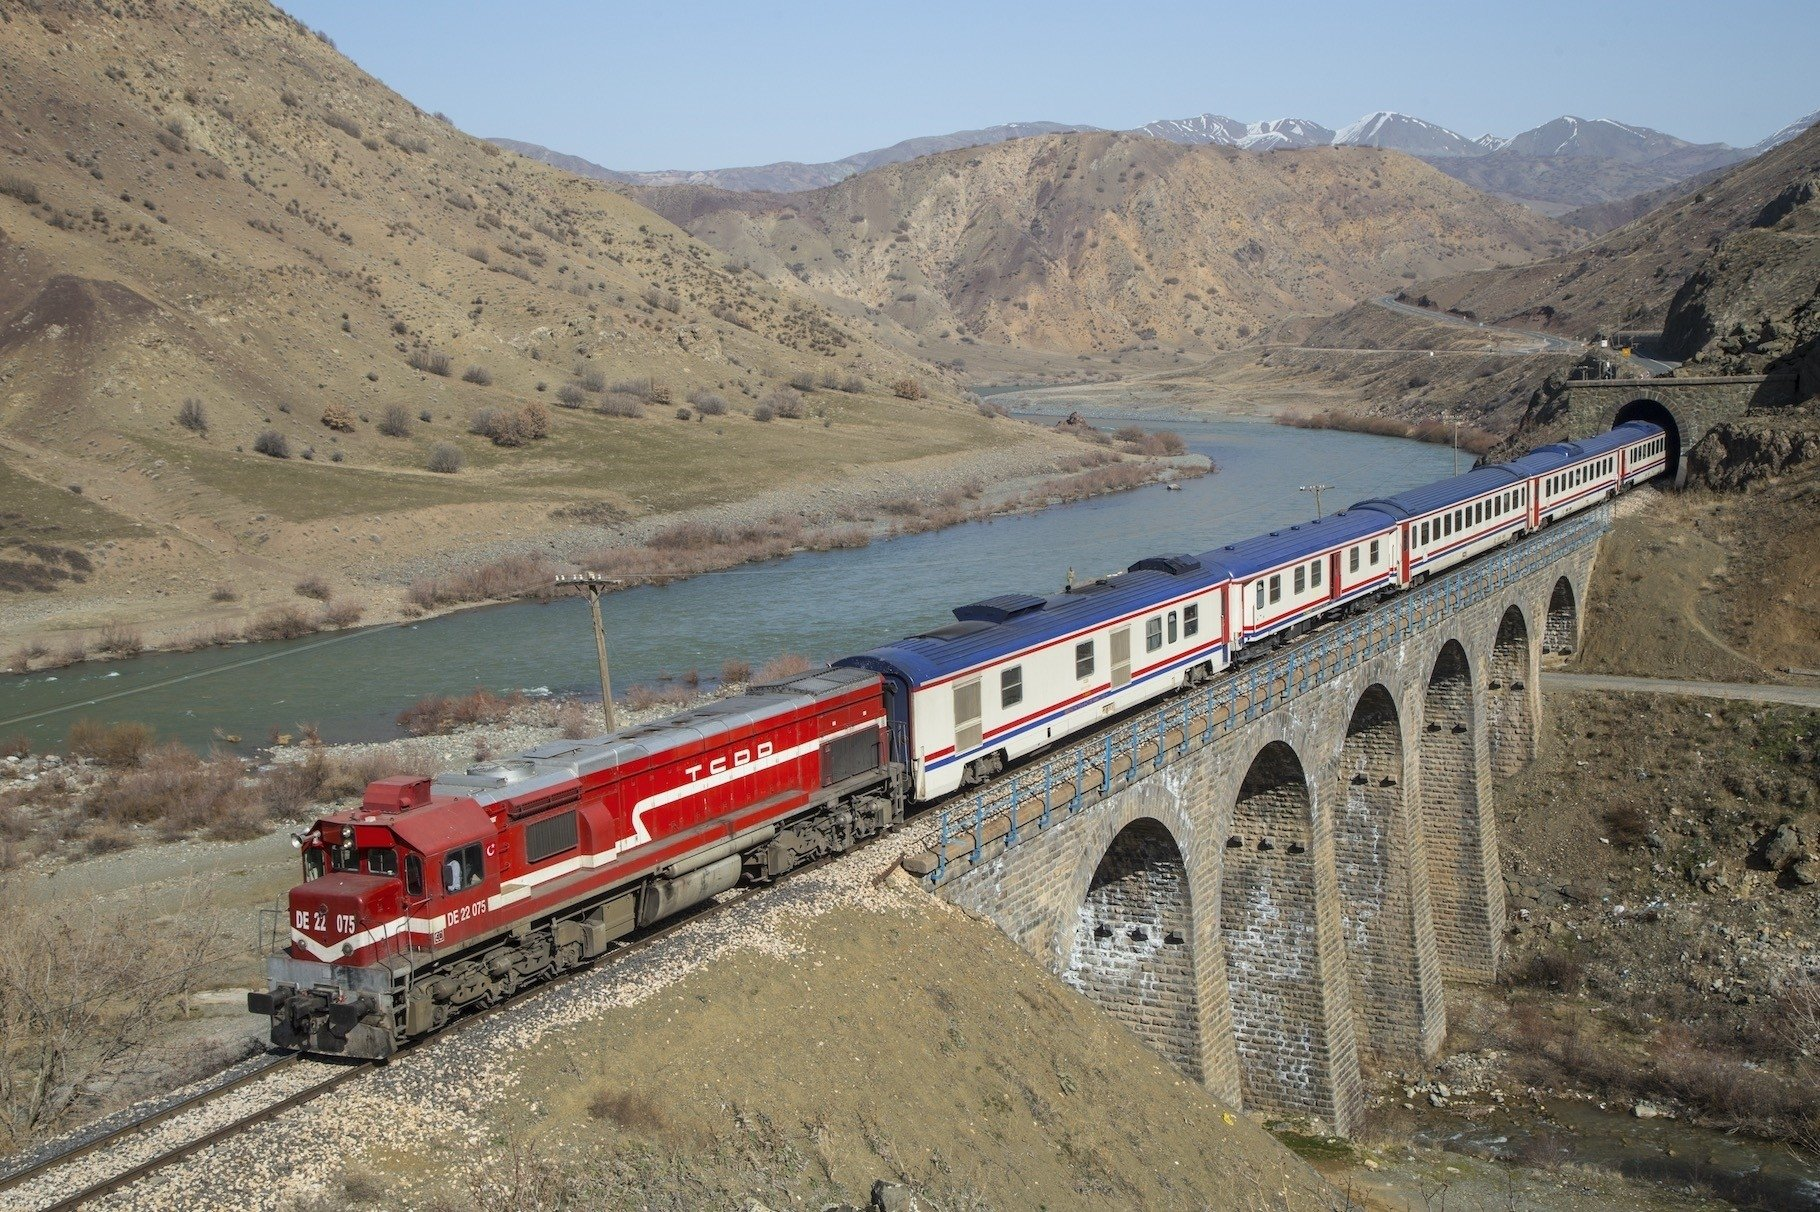 The Kurtalan Express departs from Ankara and arrives in Siirt in just over a day.